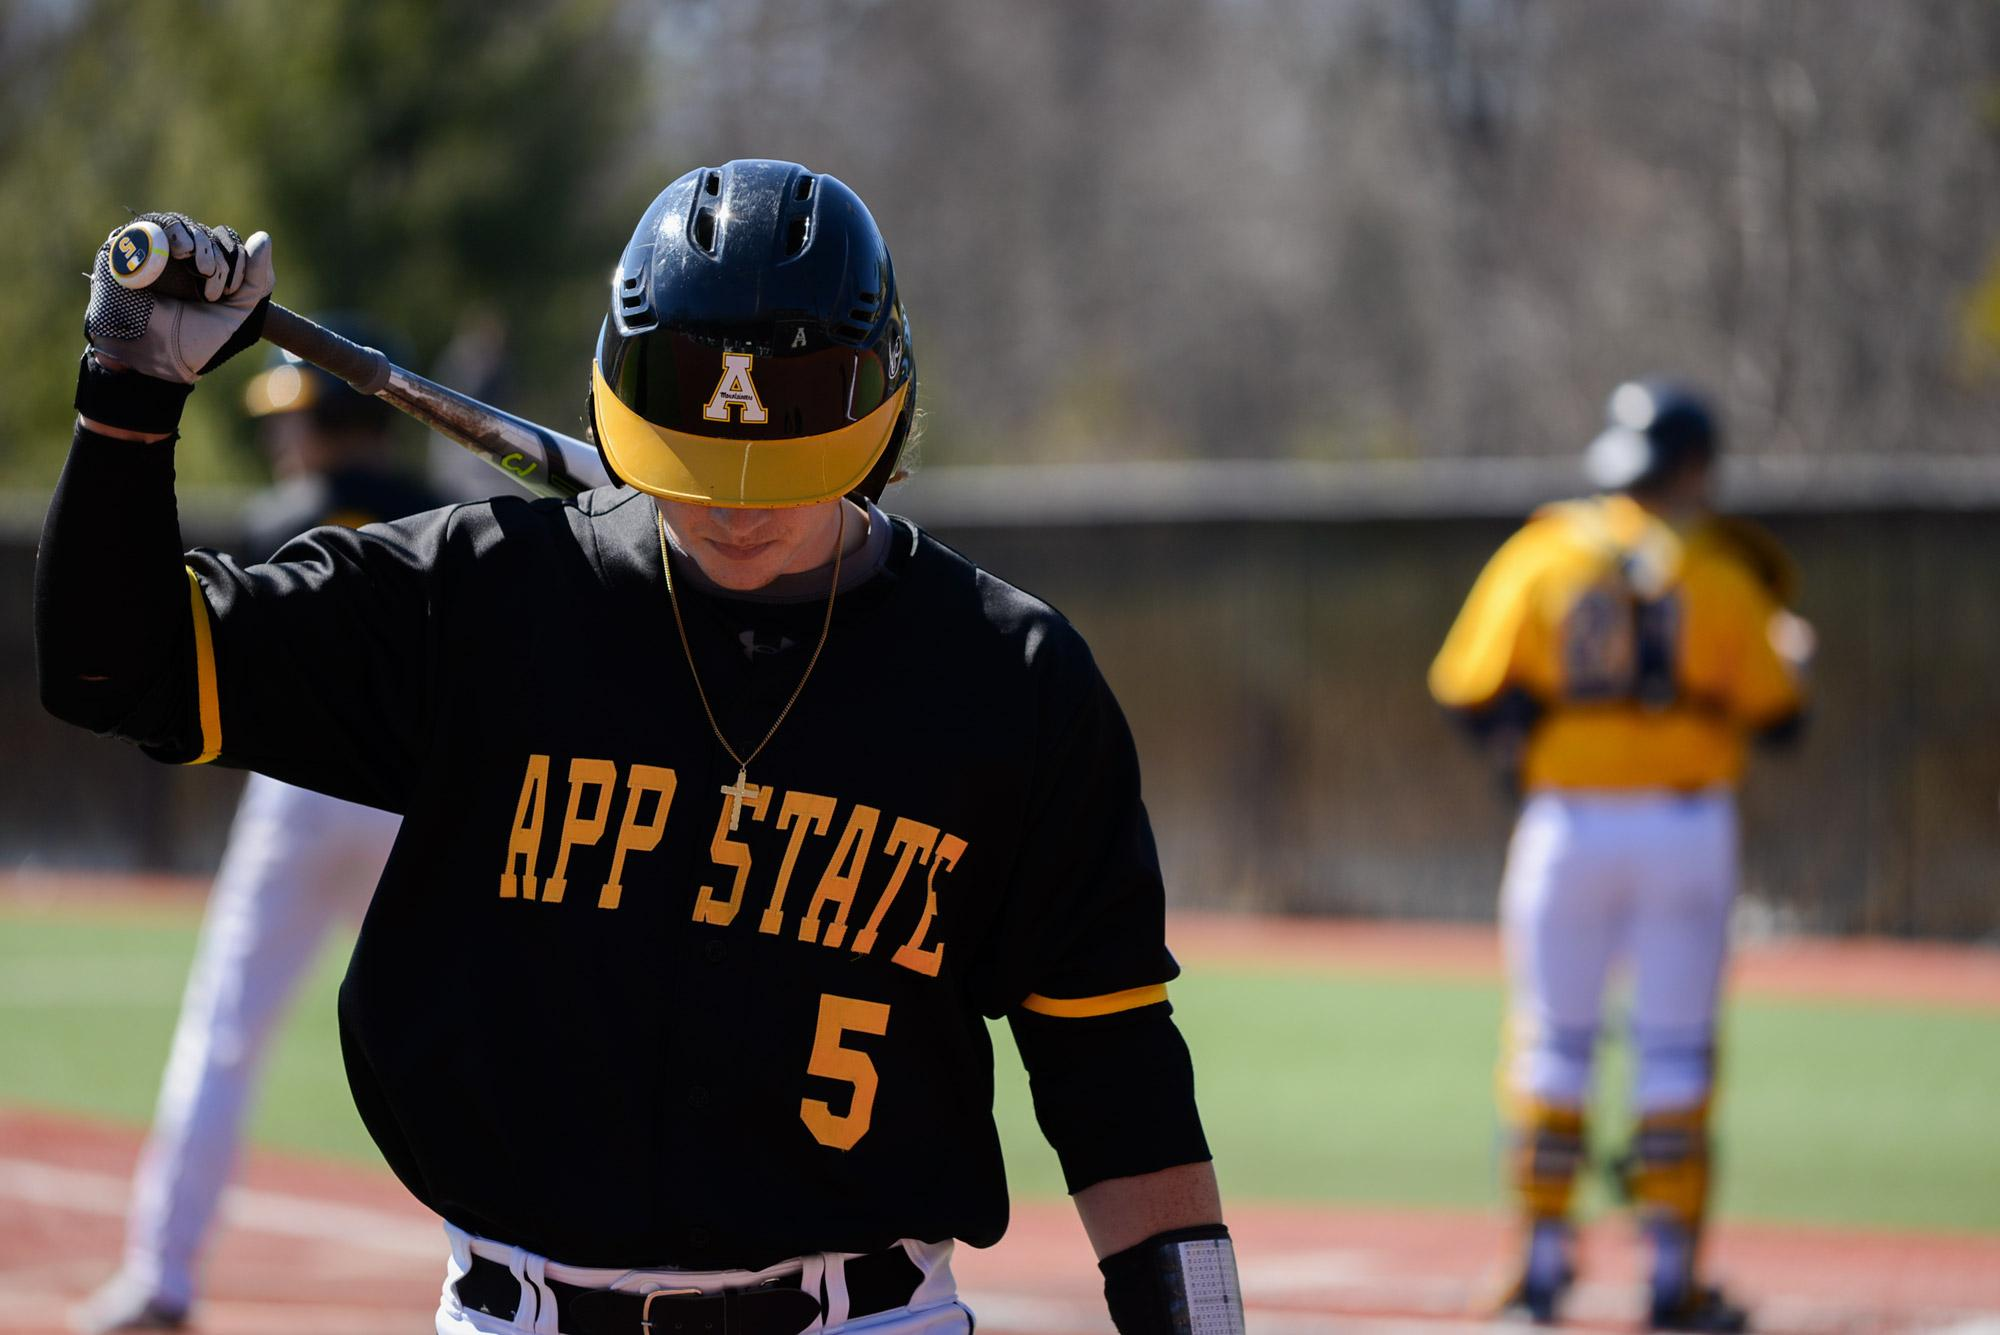 App State Baseball falls to Quinnipiac in both games during Sunday's doubleheader